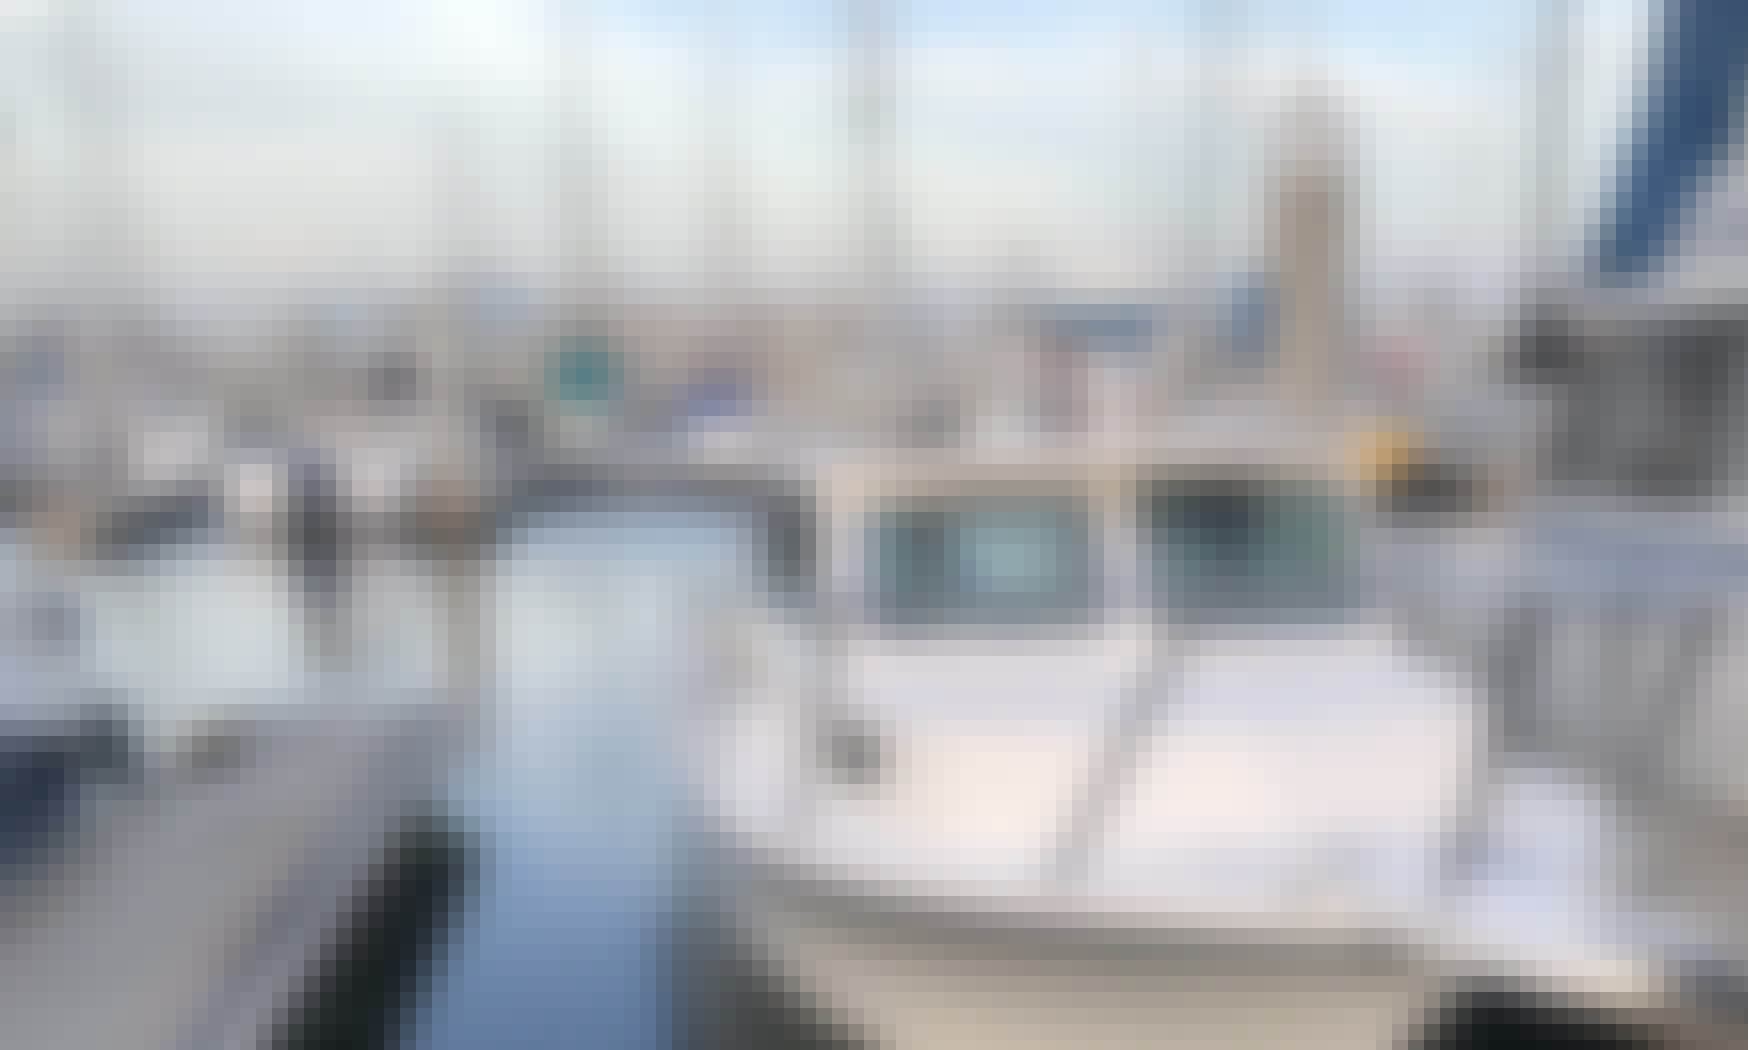 Parker 2120 Private fishing trips to Catalina/excursions all inclusive